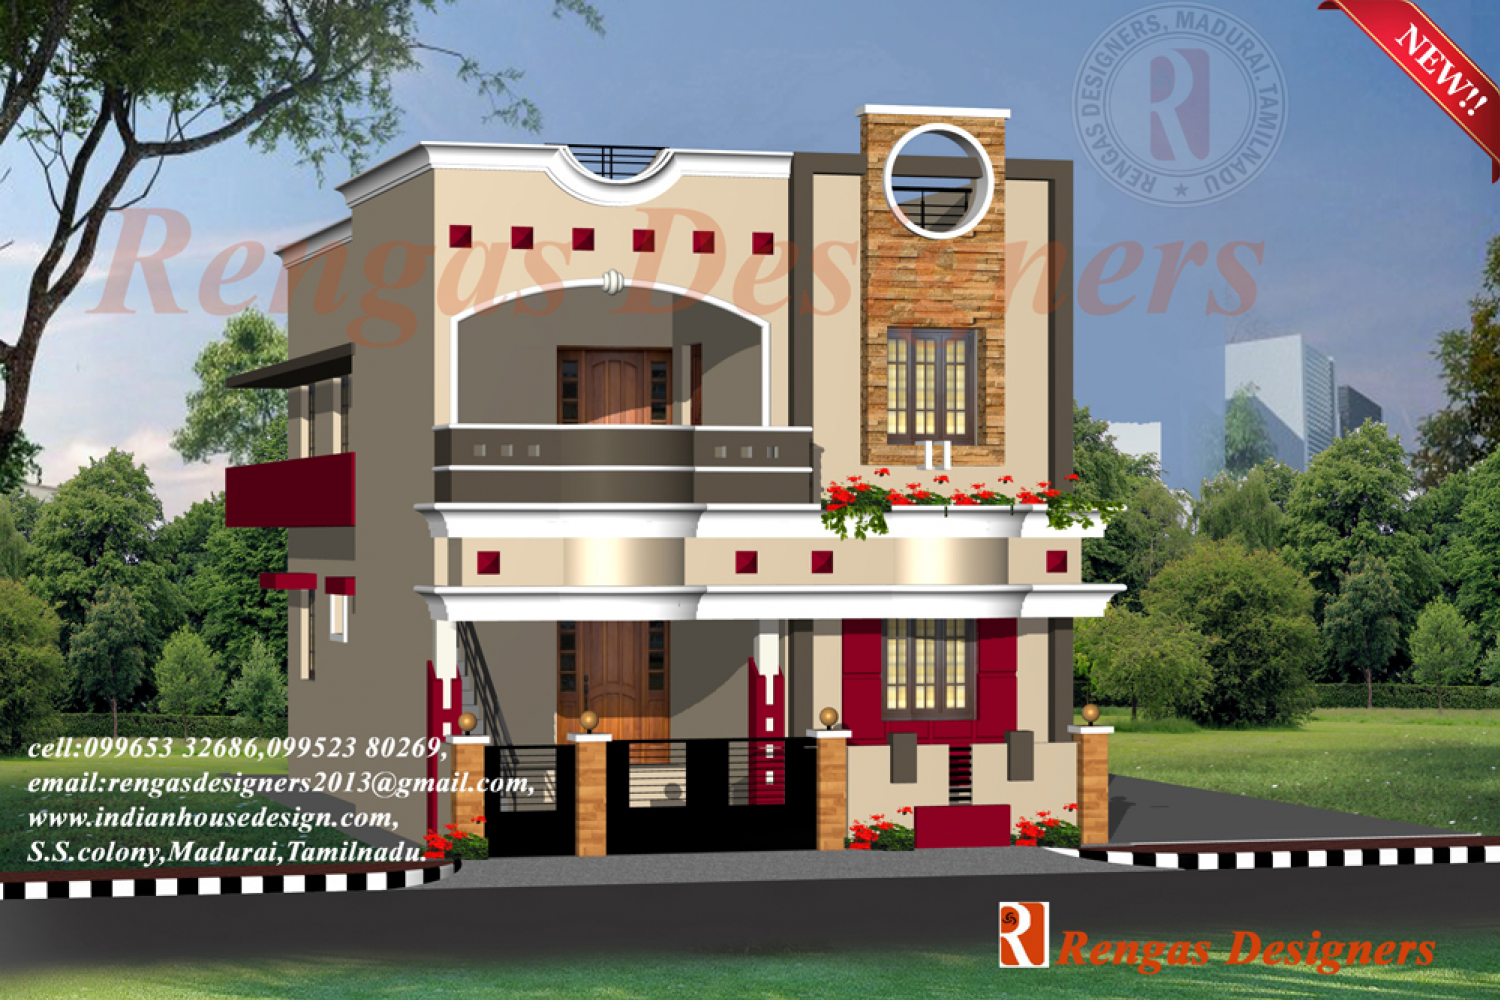 D Front Elevation Of Residential Building : Building elevation designs photos house front